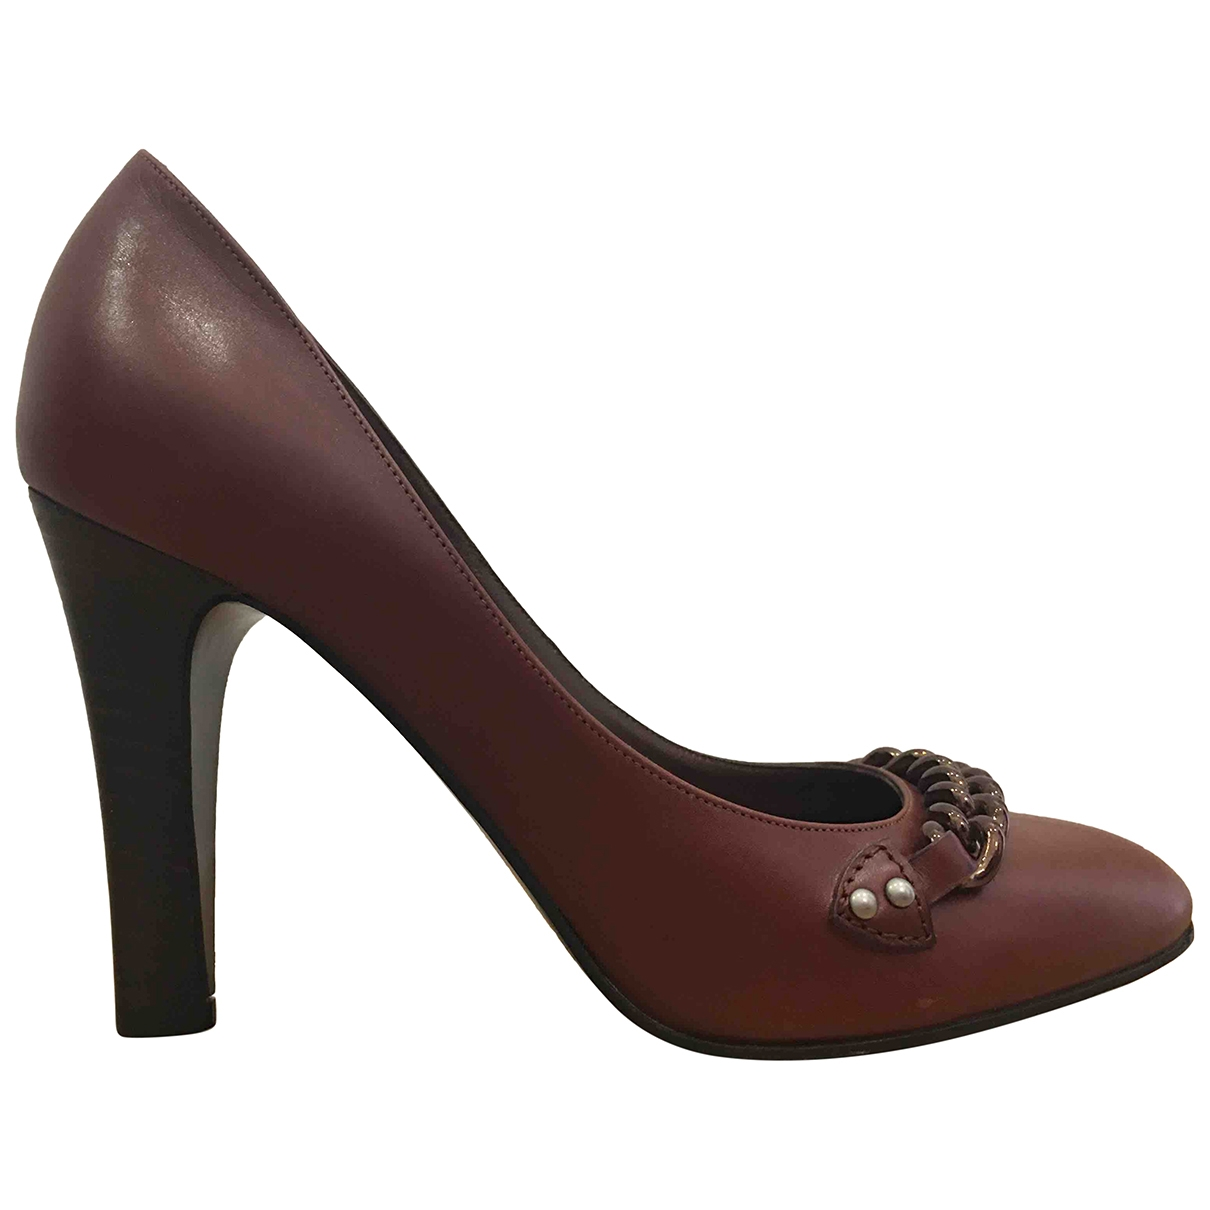 Marc Jacobs \N Brown Leather Heels for Women 37.5 EU